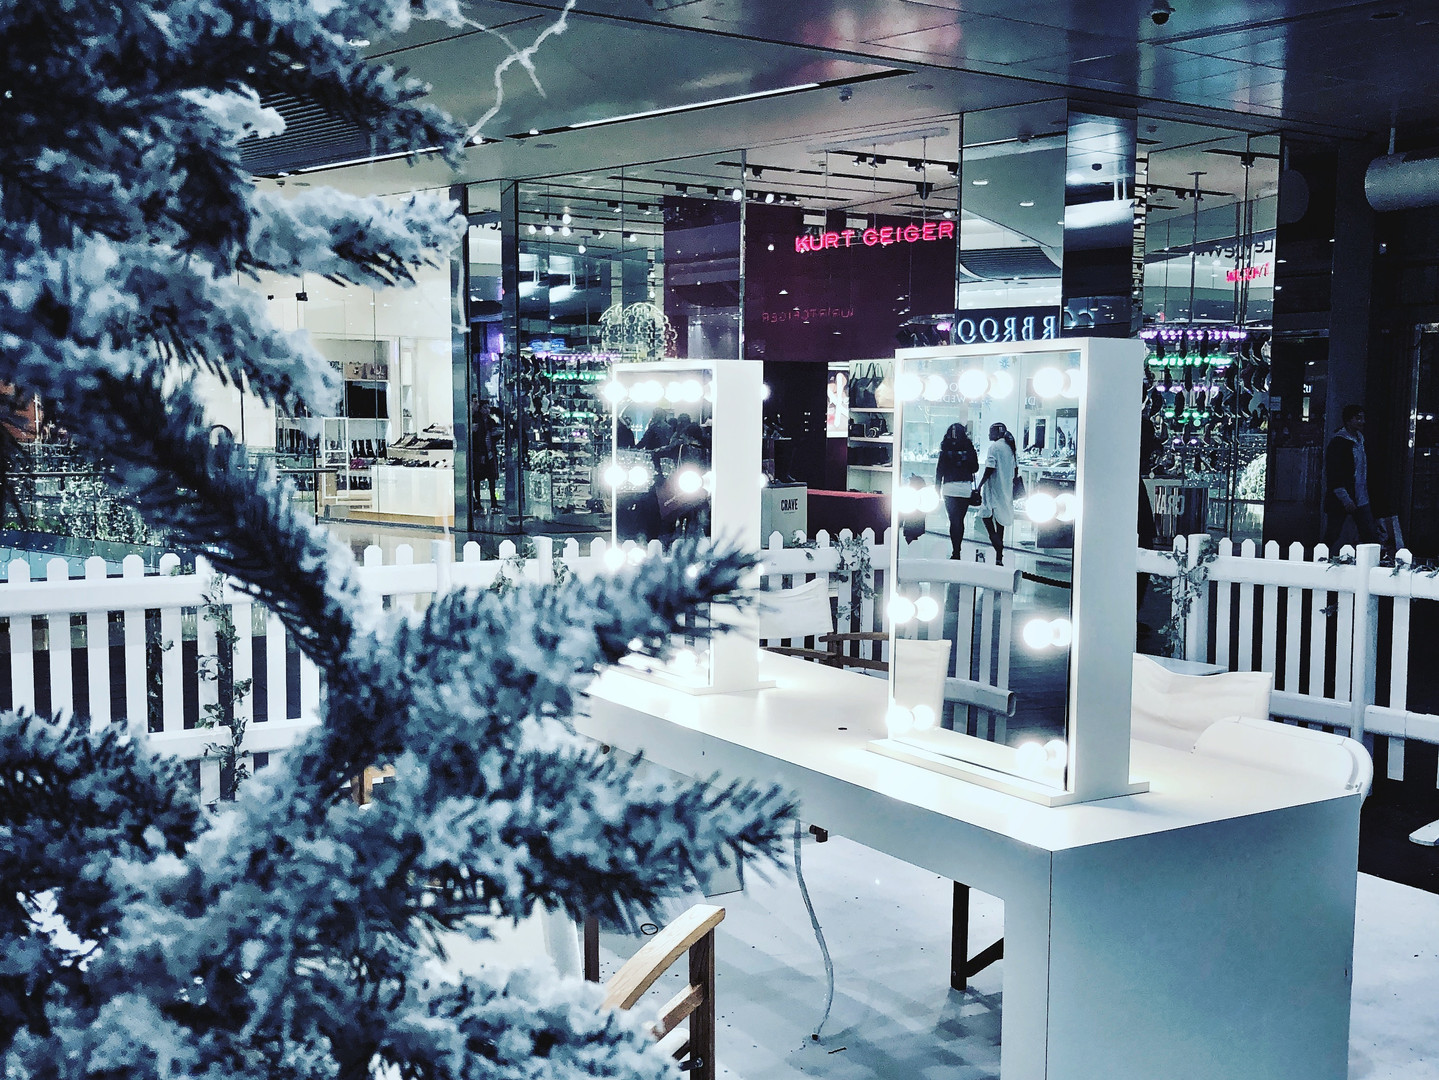 Winter make up station at Westfield